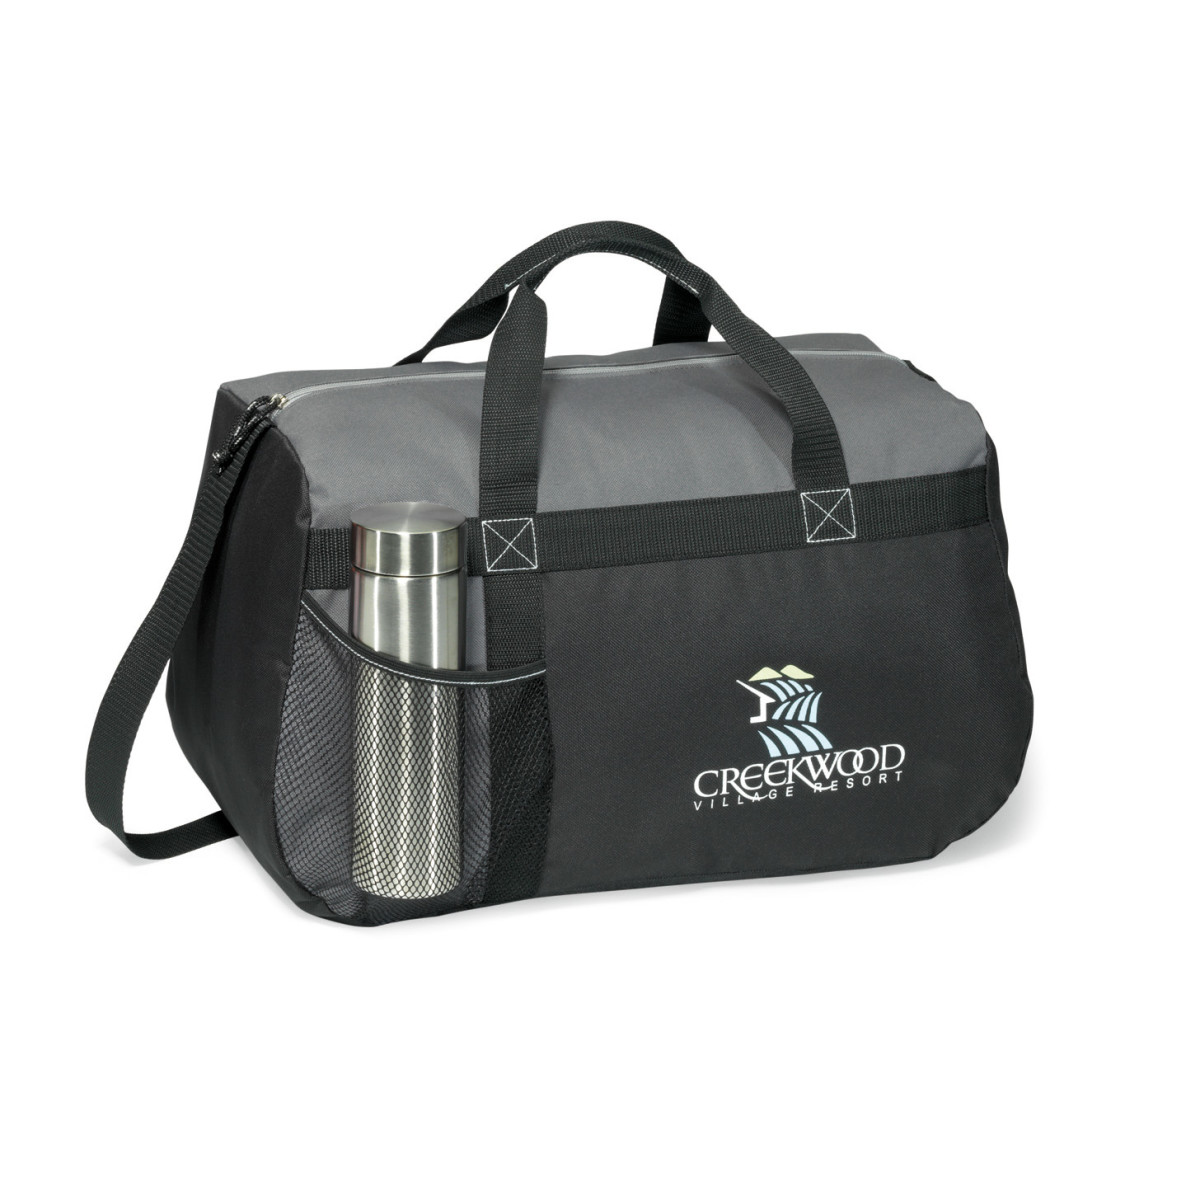 Gemline 7006 - Sequel Sport Bag